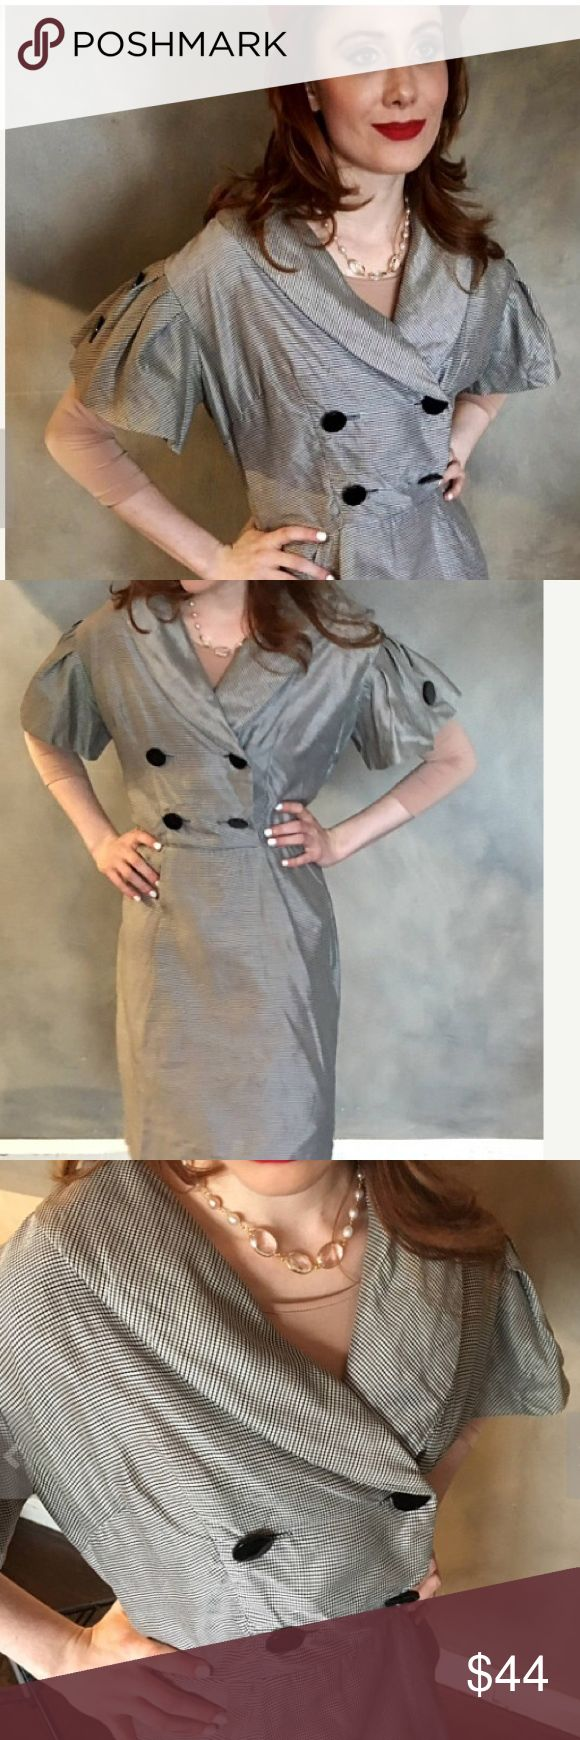 """Grey vintage dress This dress's double-breasted button placket, bell sleeves and round lapel give off serious fifties trophy wife vibes. Tag says 'ladies worker union,' proving it's genuine. Small rip under arm and inside of collar. Fabric unmarked. Measures 19"""" pit to pit, 14"""" across waist and 36"""" long. Vintage  Dresses Midi"""